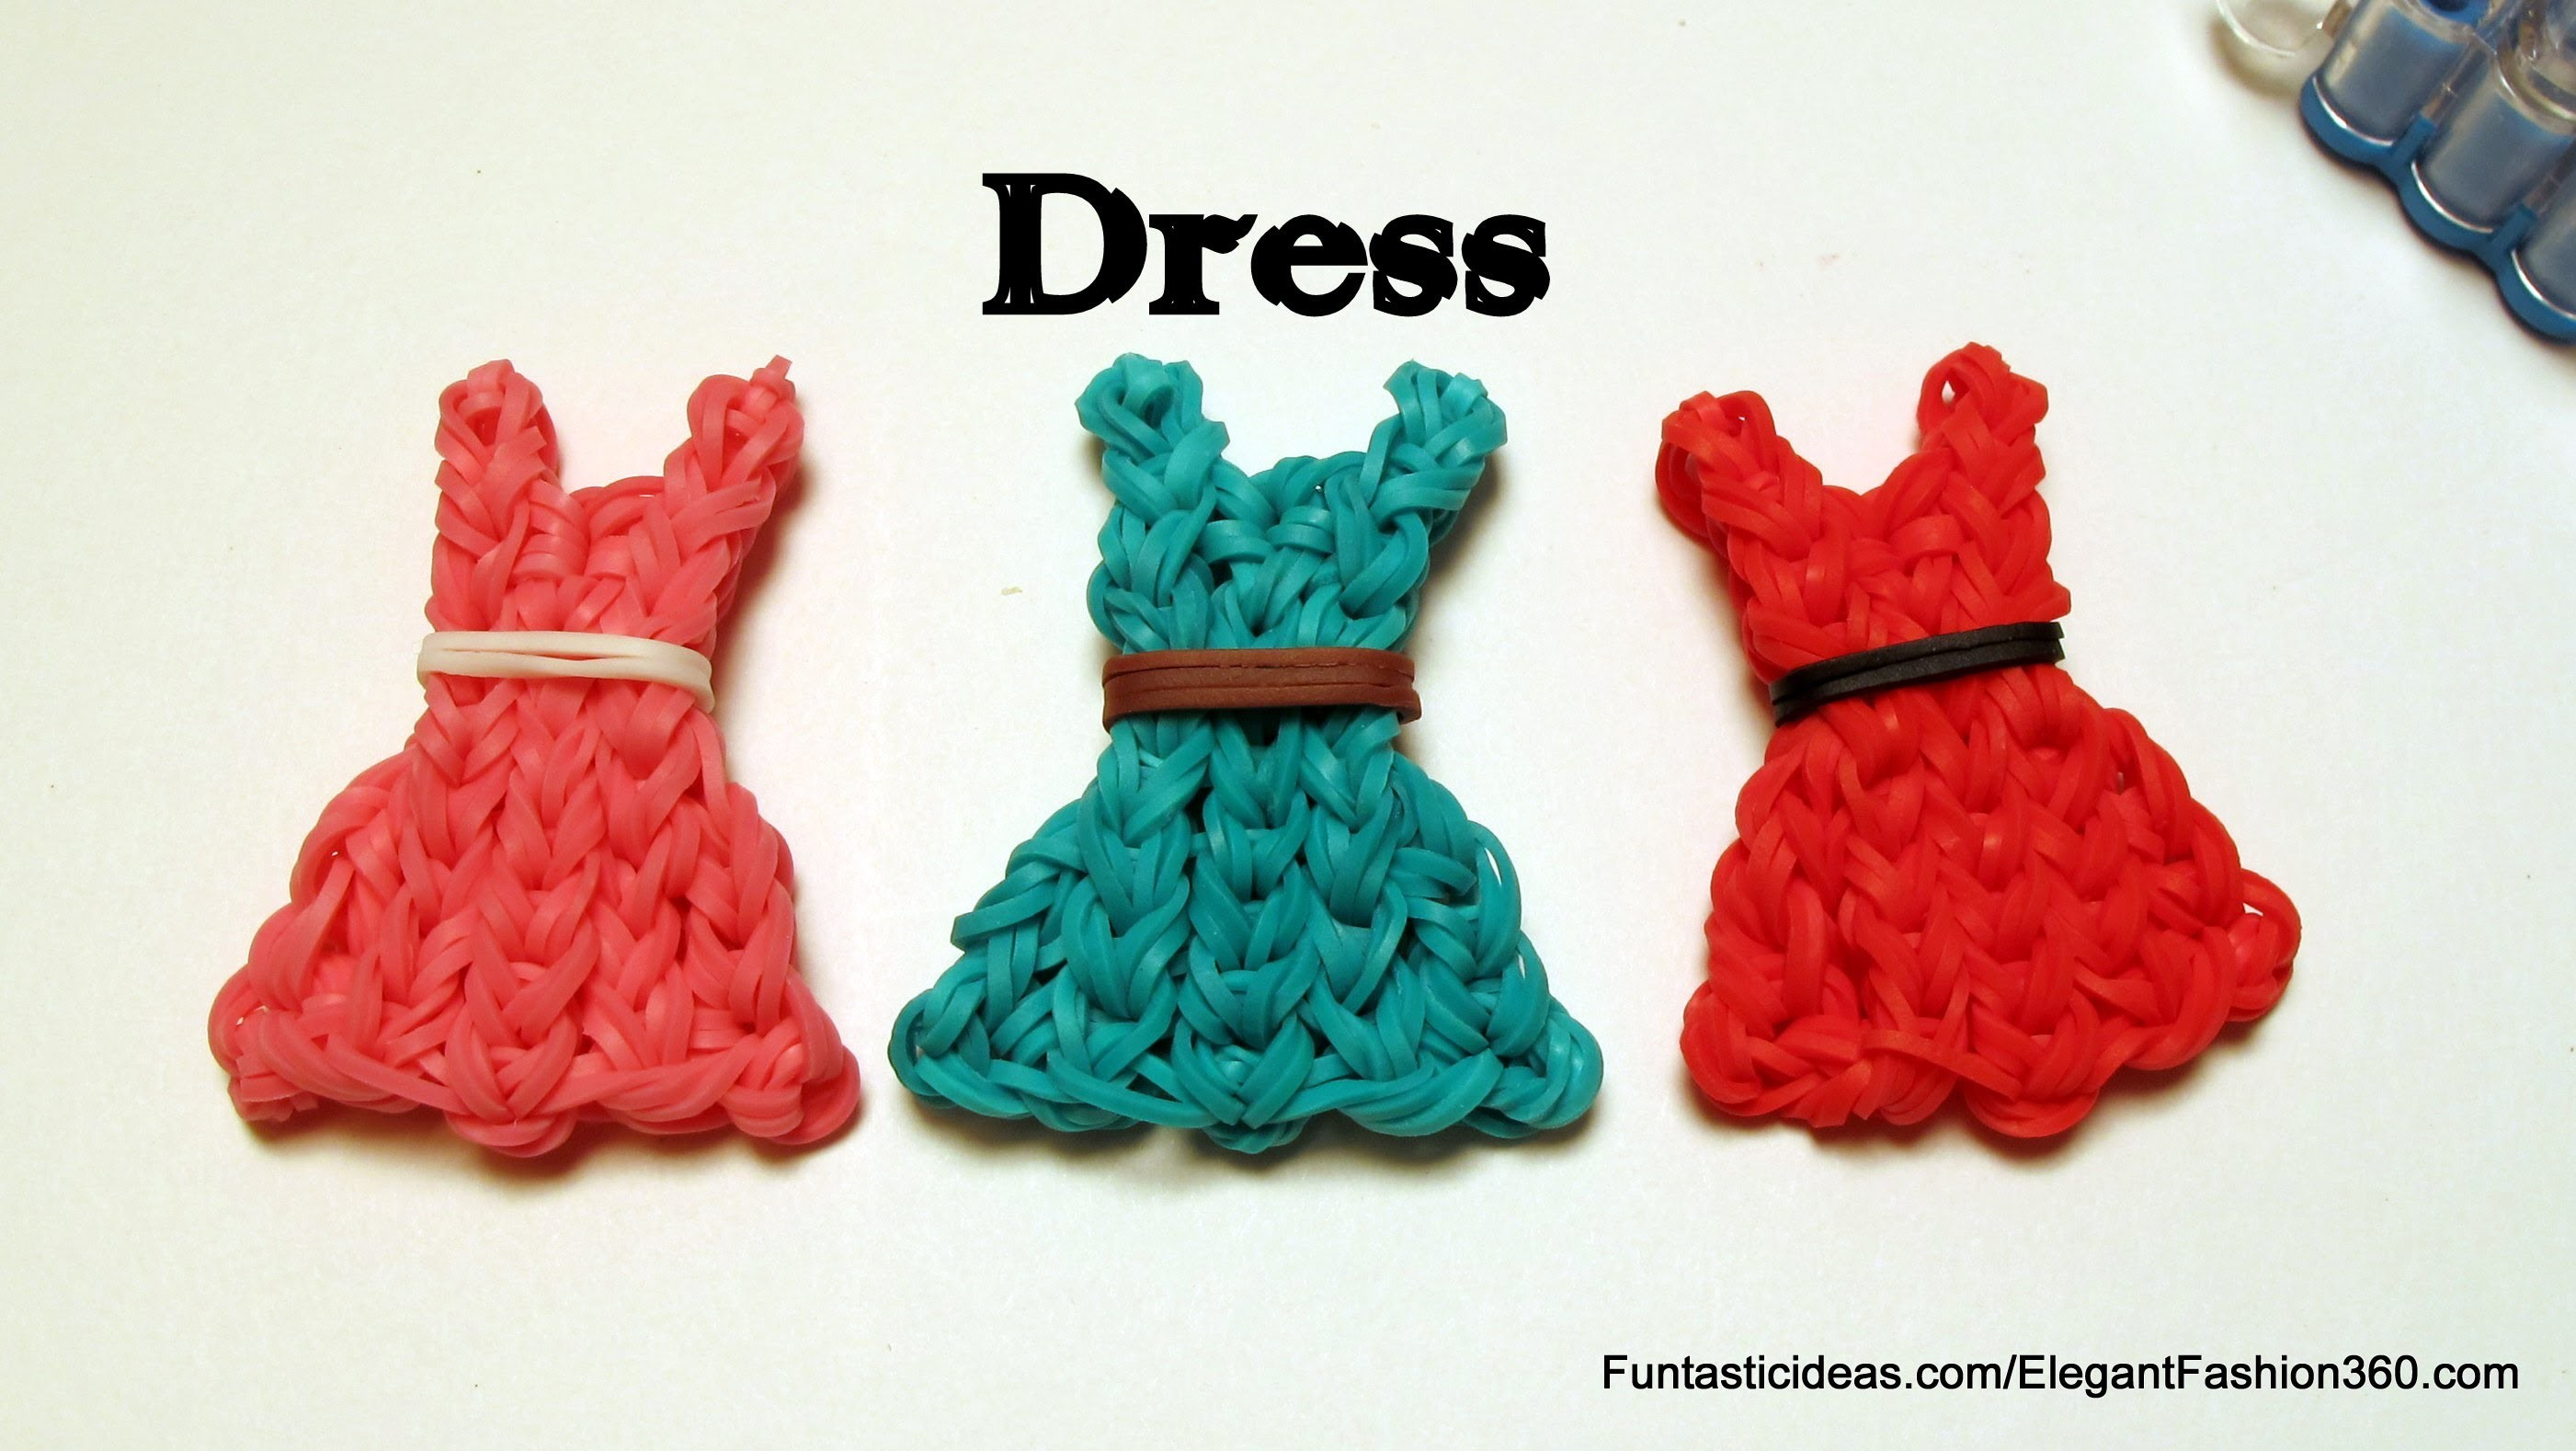 Rainbow Loom Bands Dress emoji.emoticon charm - How to - Mother's Day